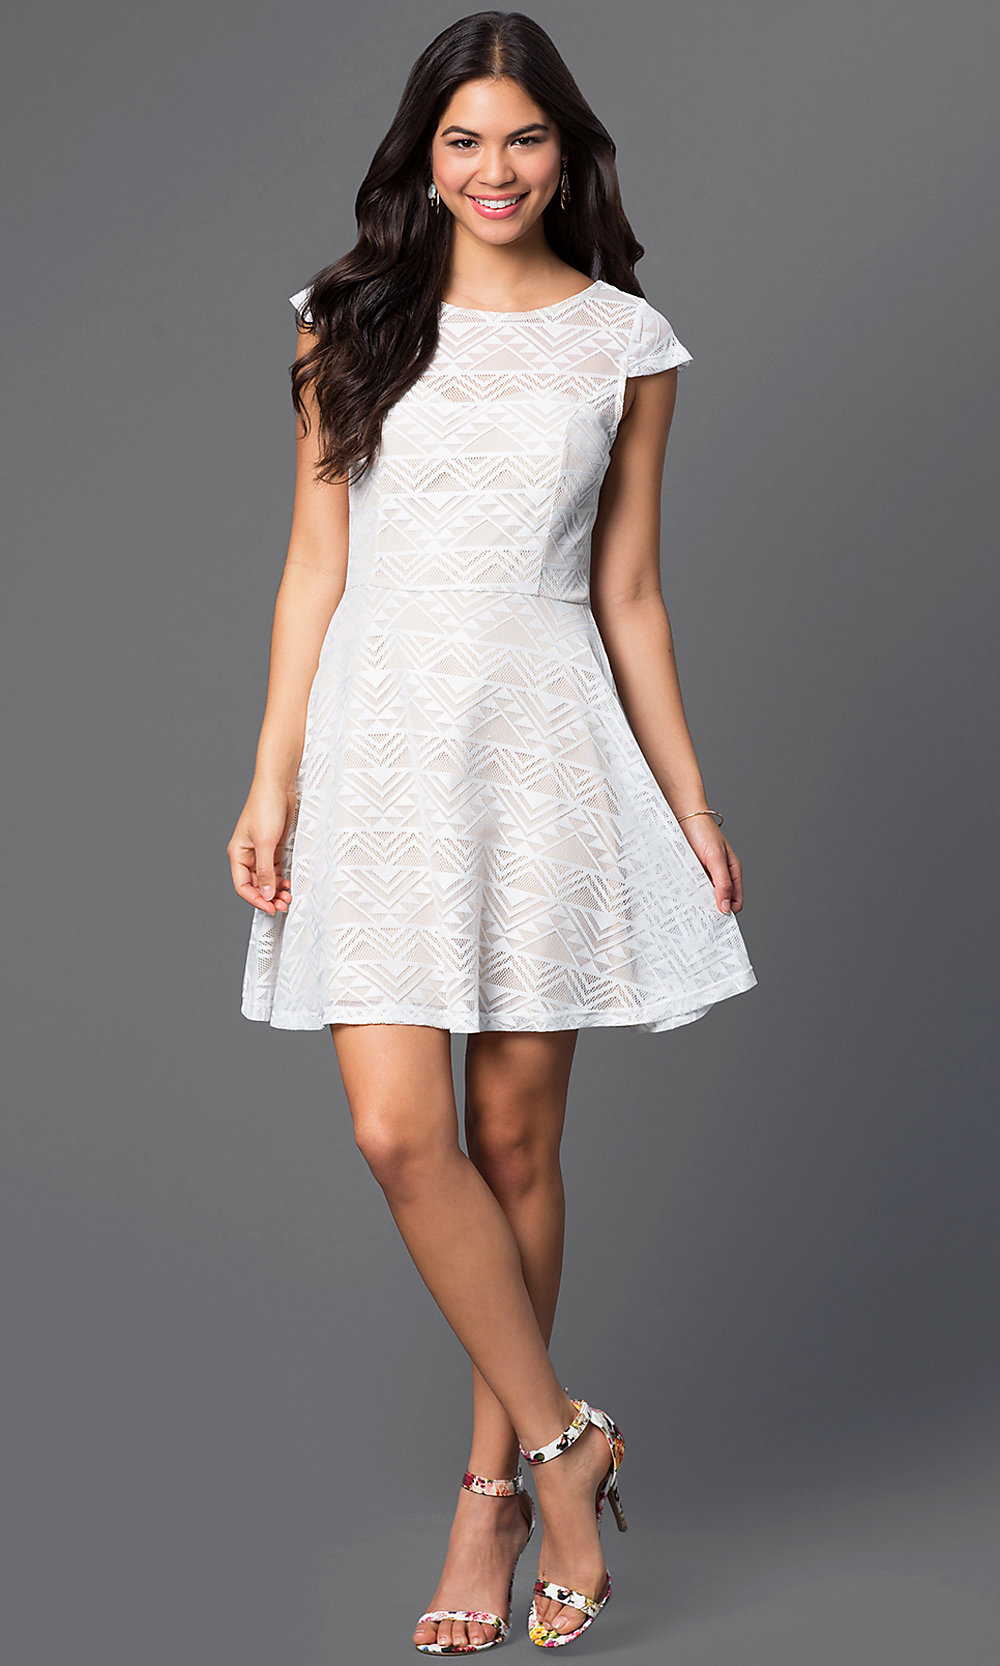 Short White Scoop-Neck Cap-Sleeve Dress - PromGirl